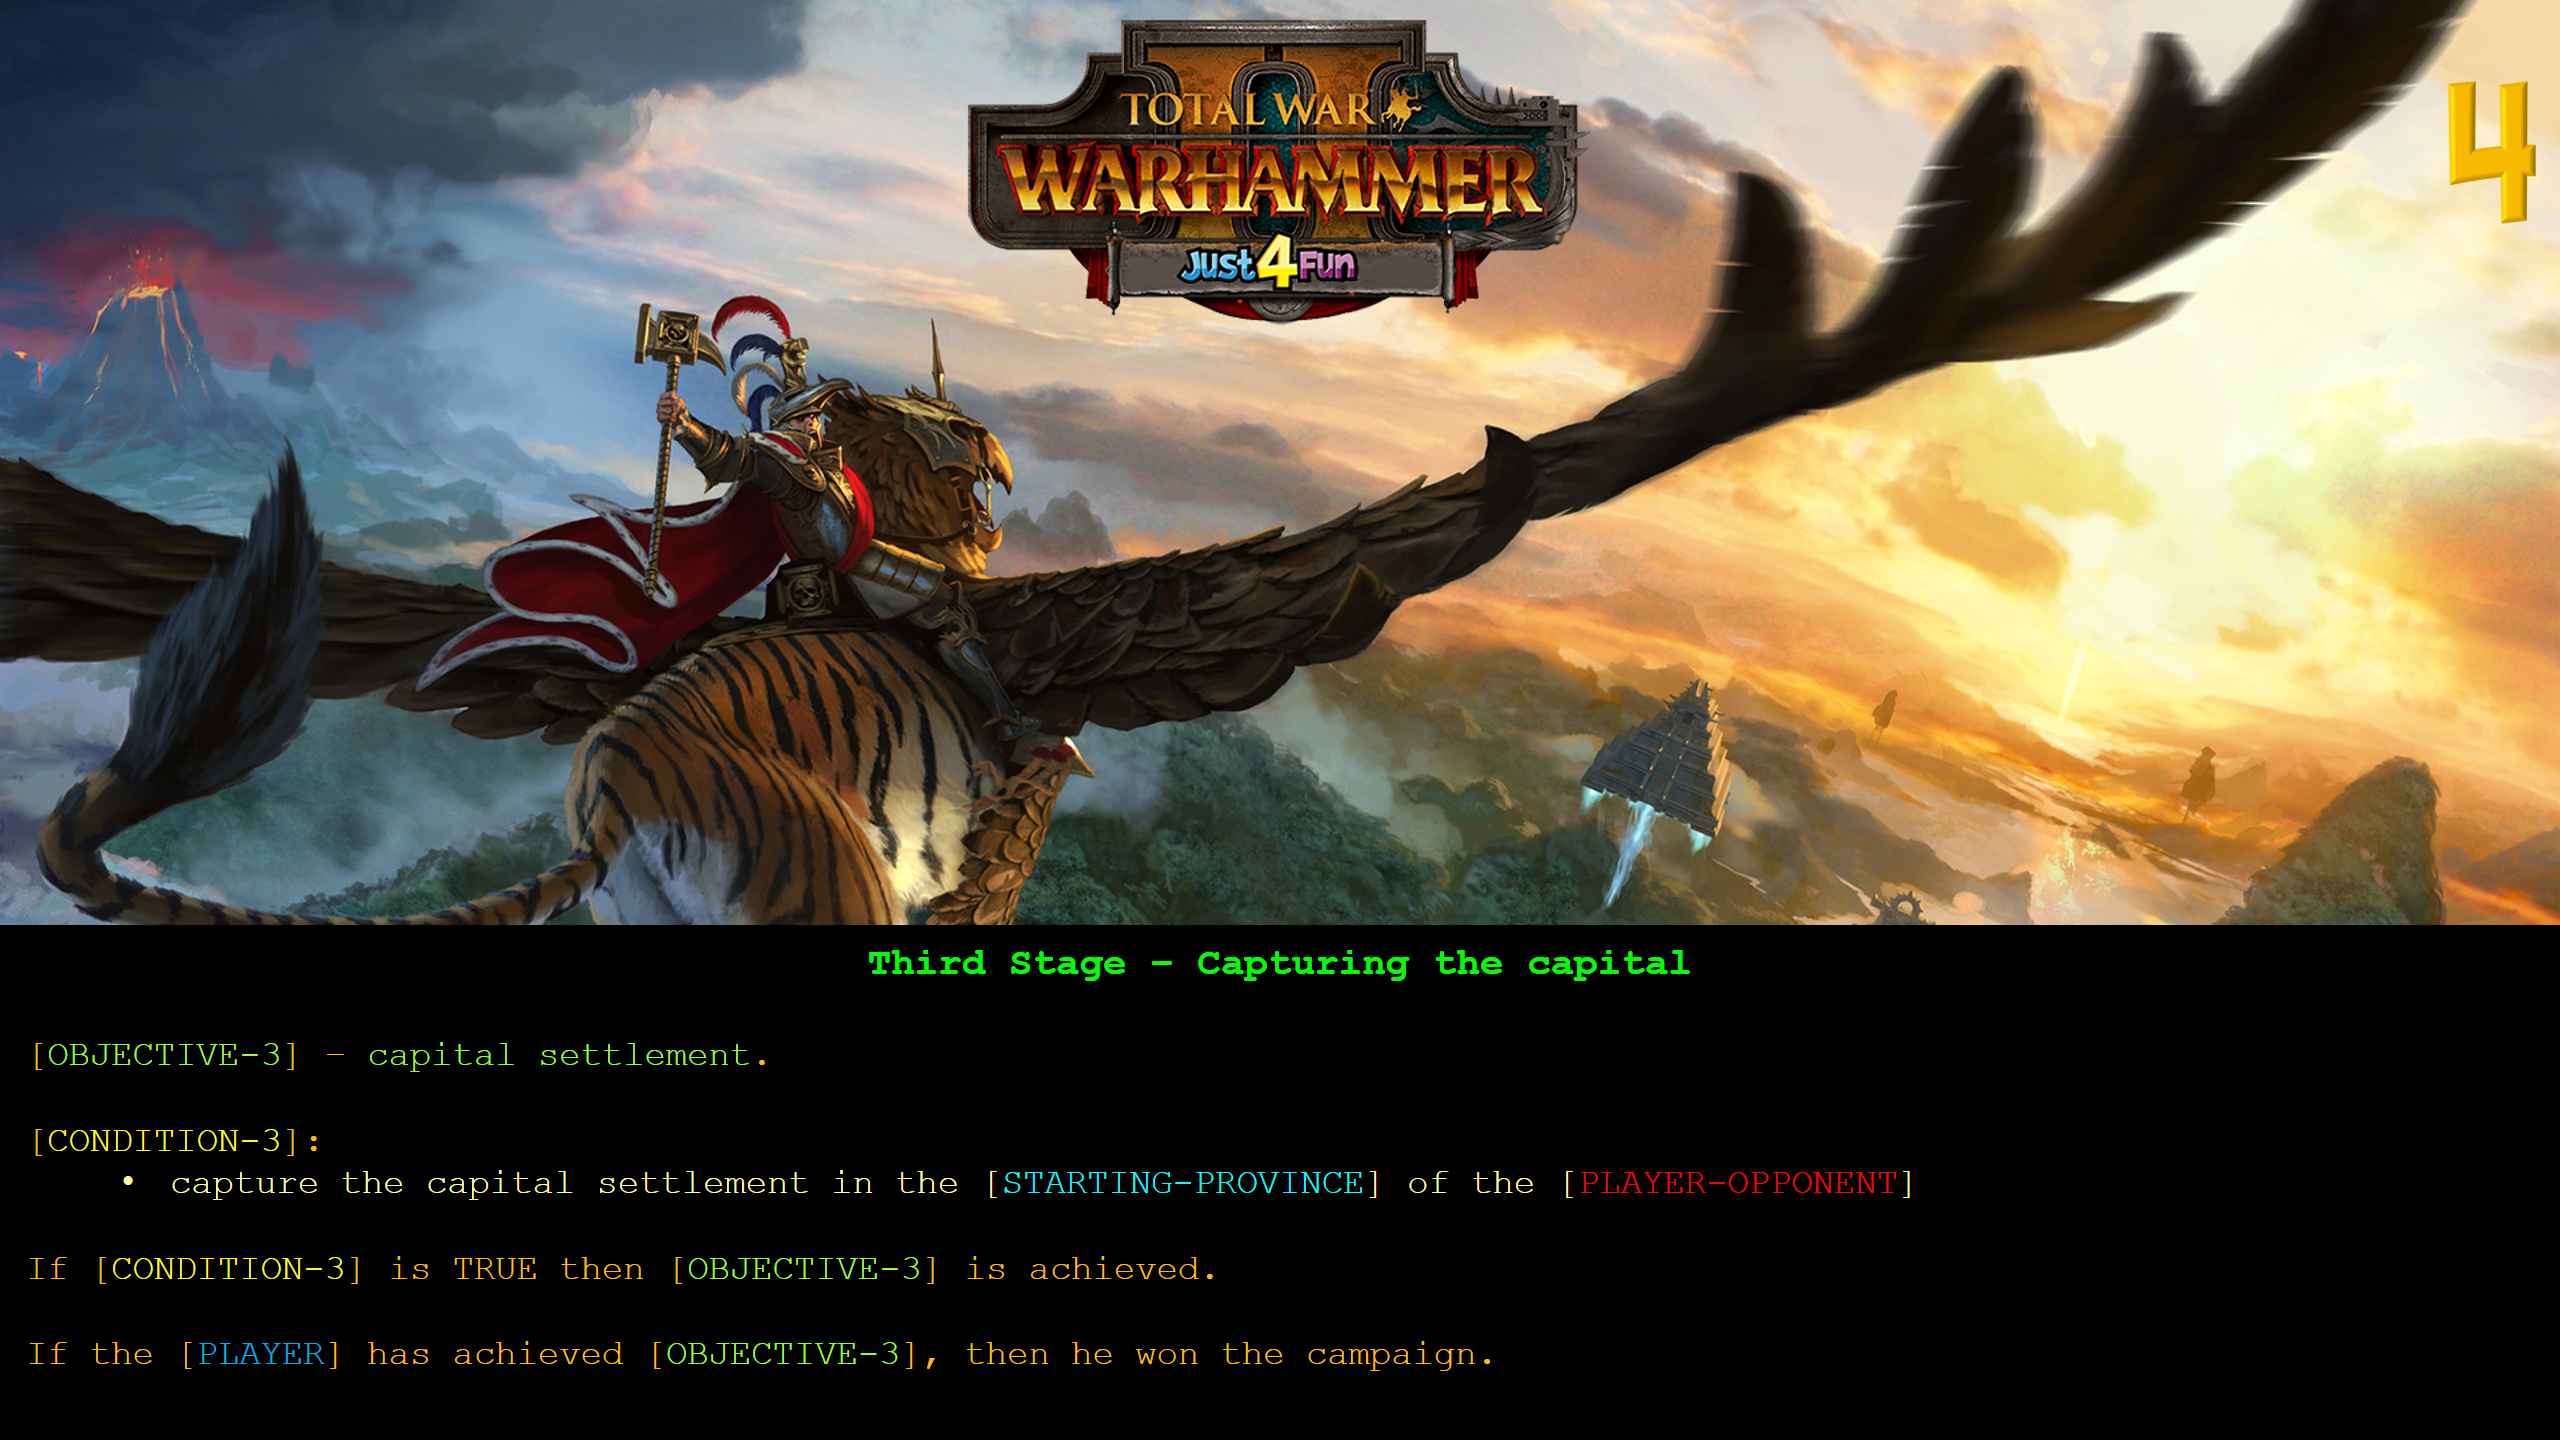 PvP mode of playing head-to-head Multiplayer campaign Warhammer